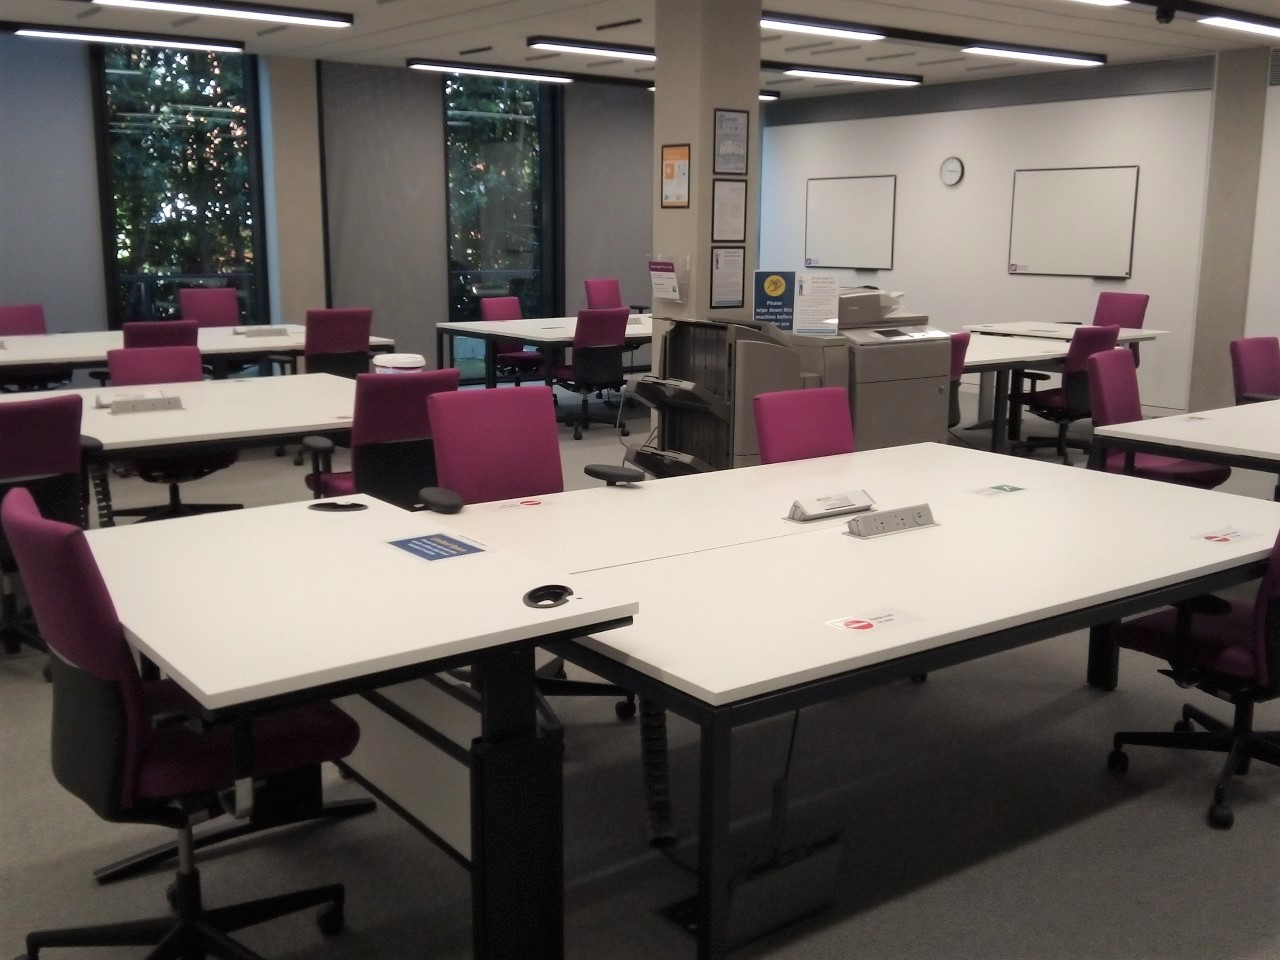 Photo of desks in the Central Graduate Study Room. Large desks with no partitions.